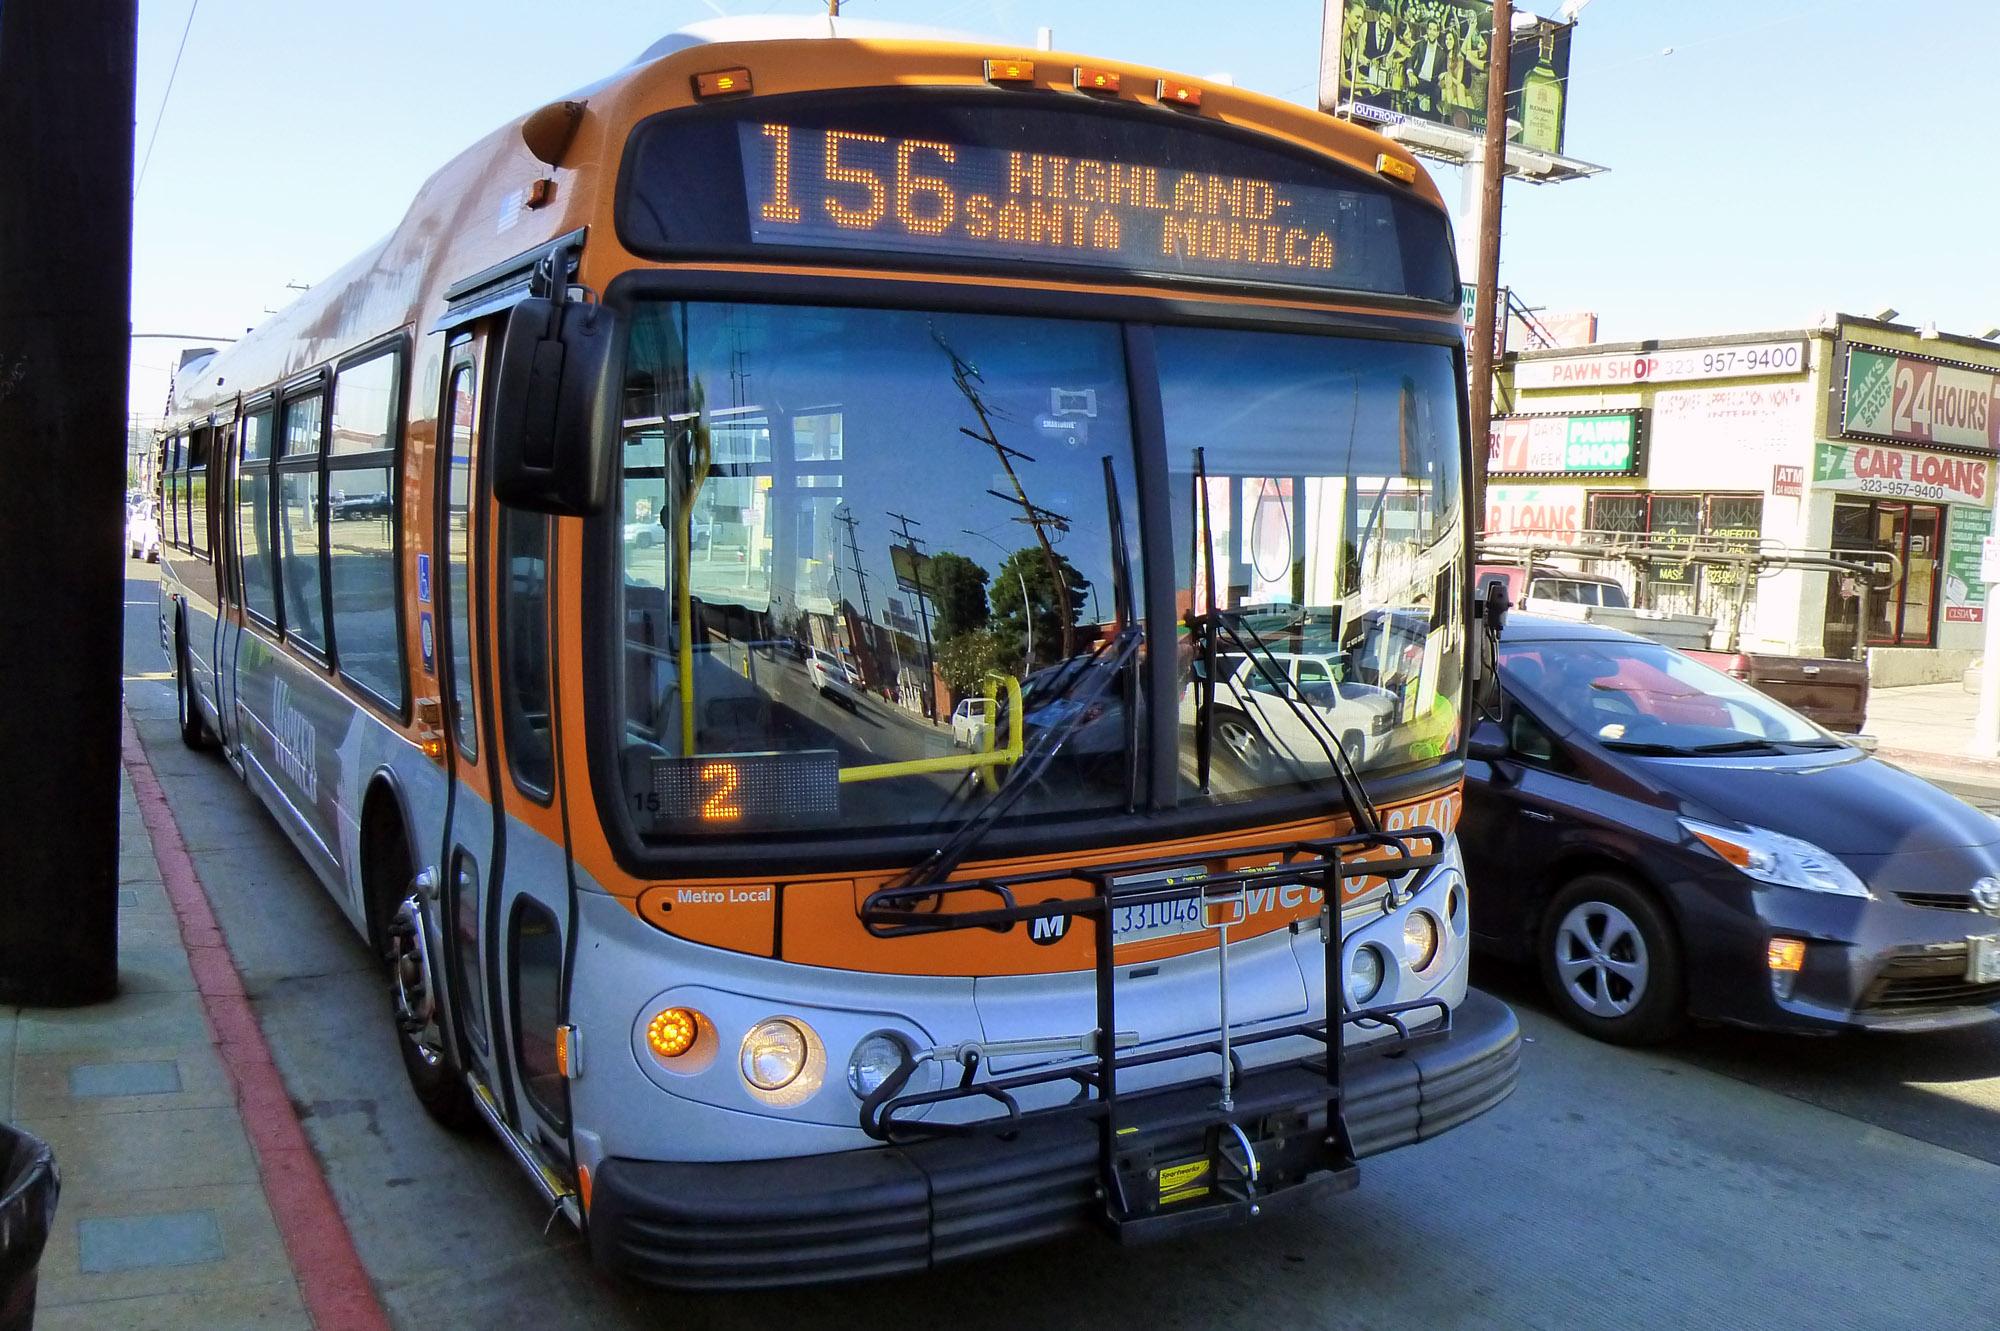 Free Wi-Fi service coming to 150 Metro buses around LA